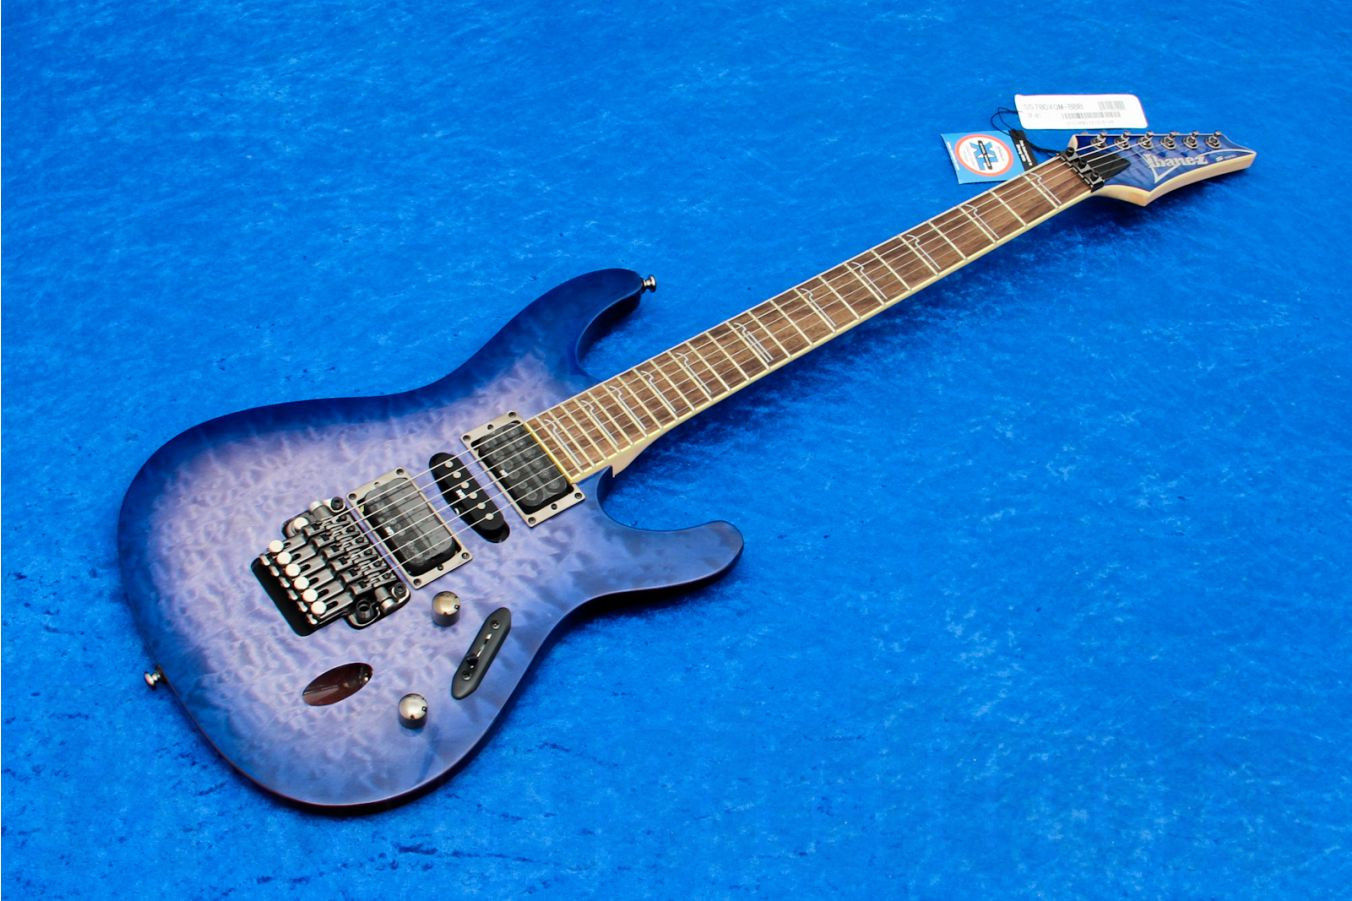 Ibanez S570DXQM BBB - Bright Blue Burst - b-stock (1x opened box)